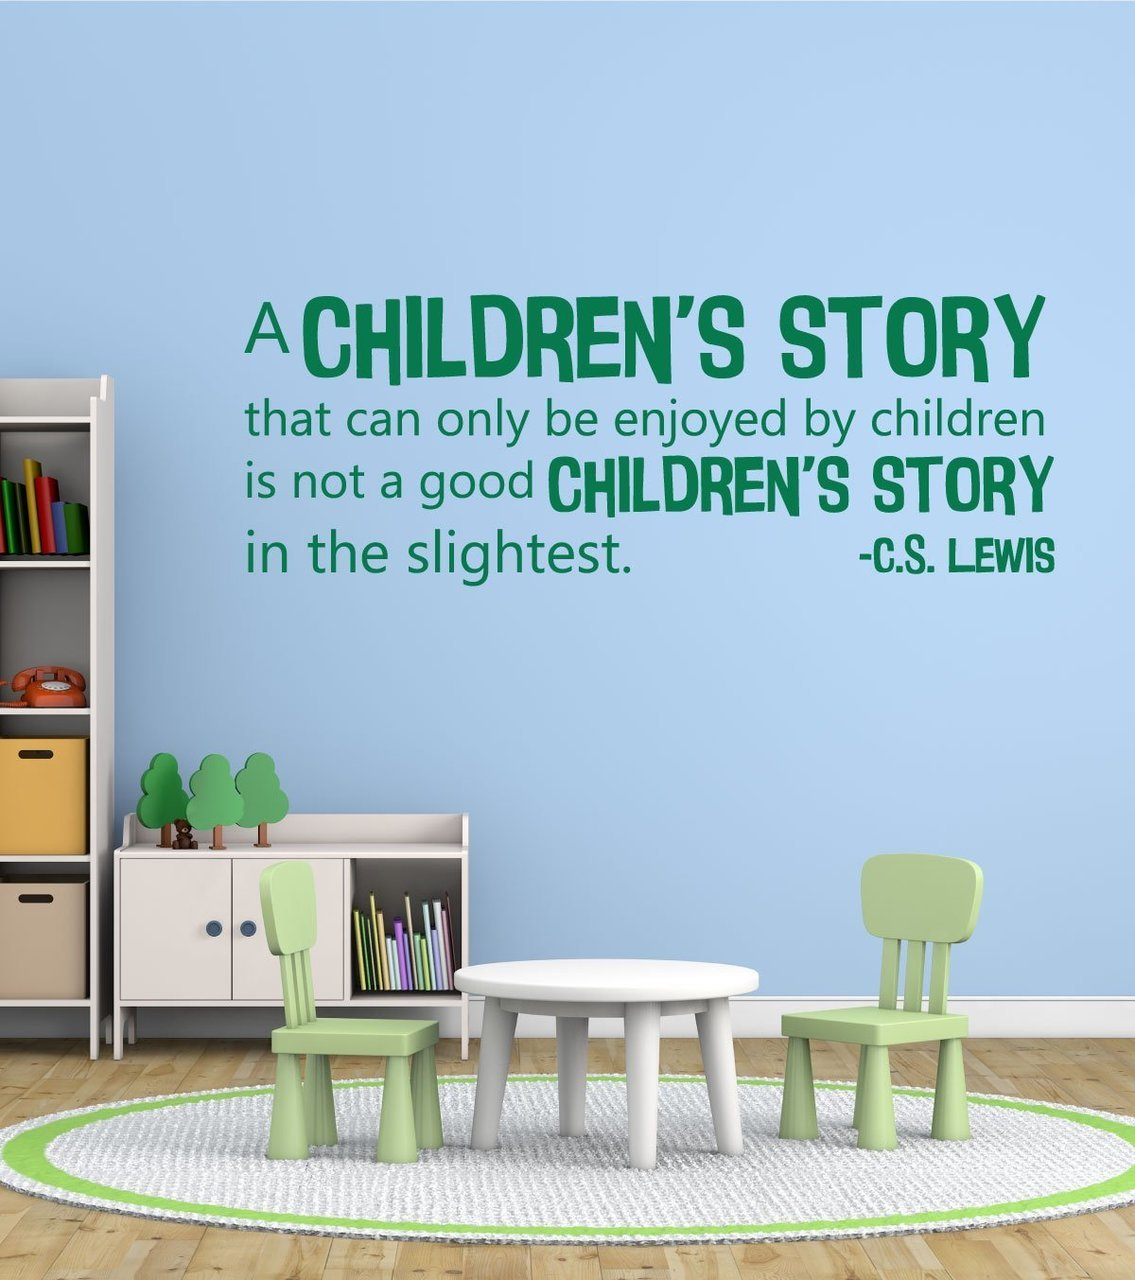 Book Quotes Wall Decals - Story in the Slightest- C.S. Lewis